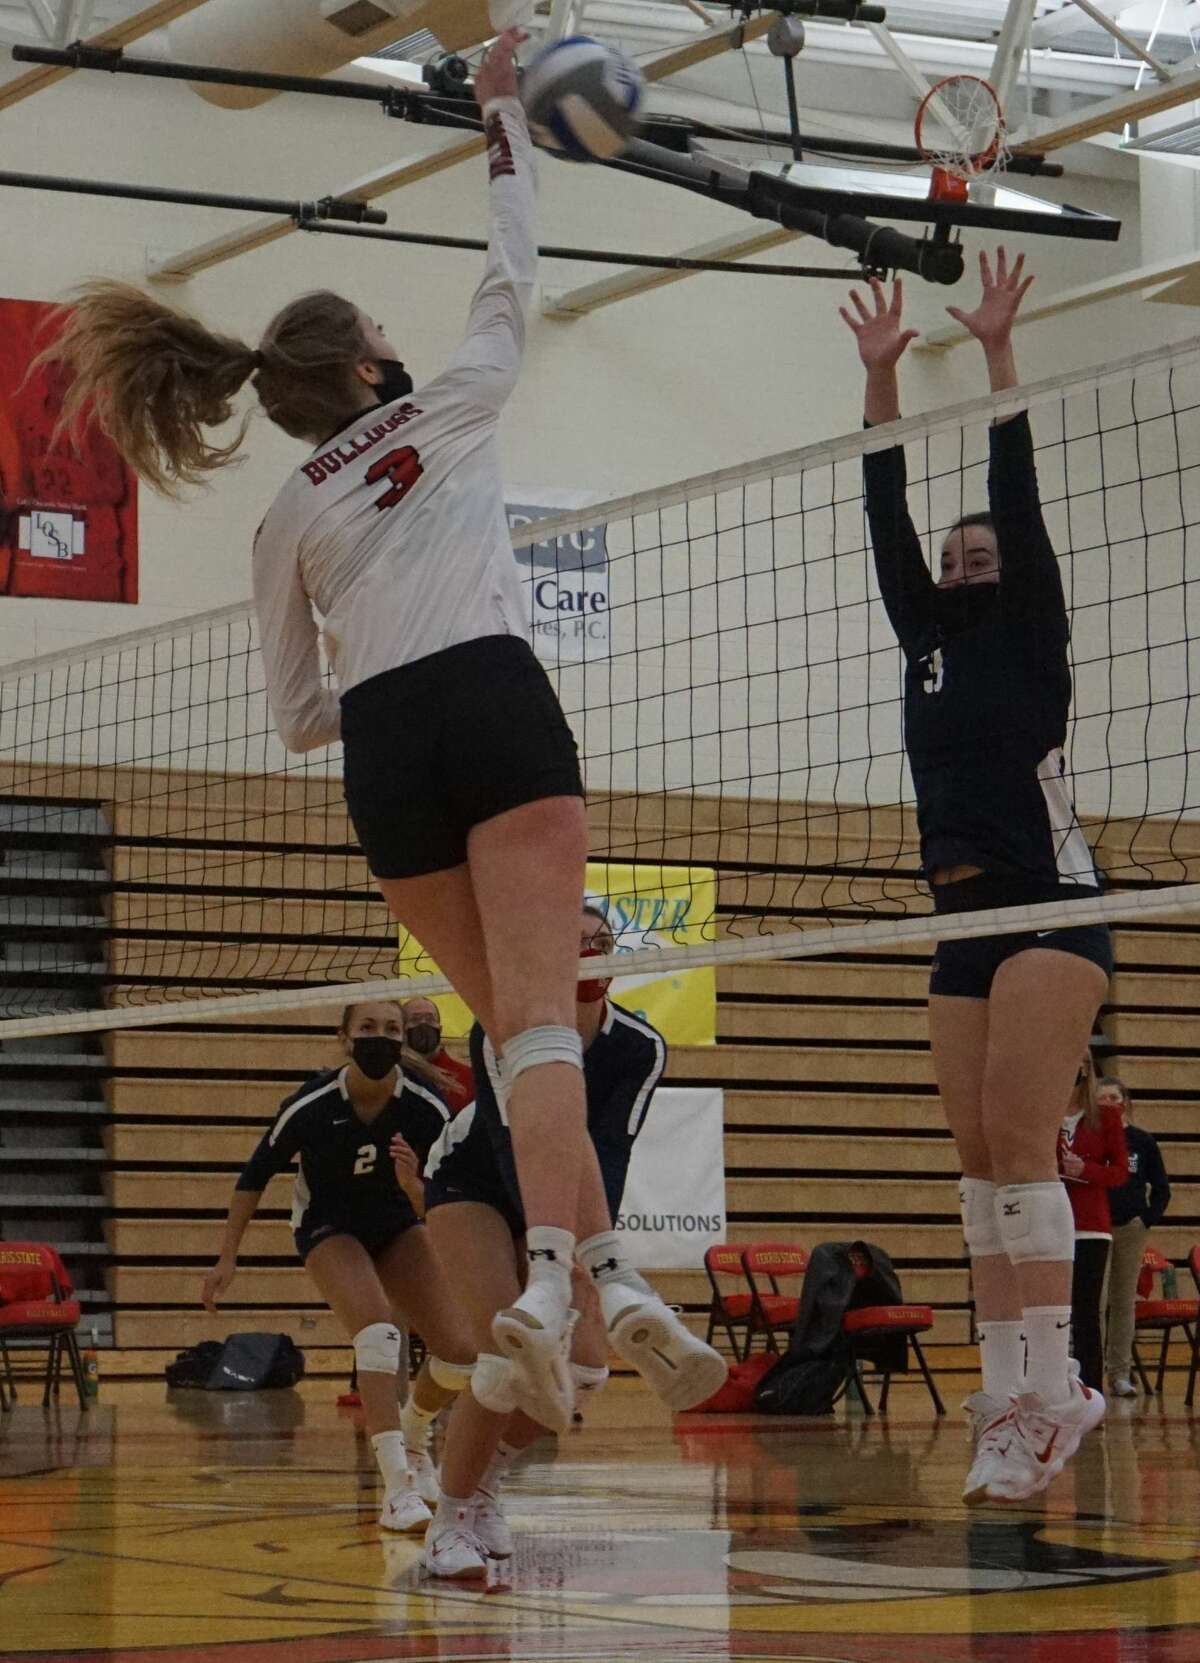 The Ferris State volleyball team continued its winning ways by sweeping the Saginaw Valley State Cardinals on Friday night at Jim Wink Arena.